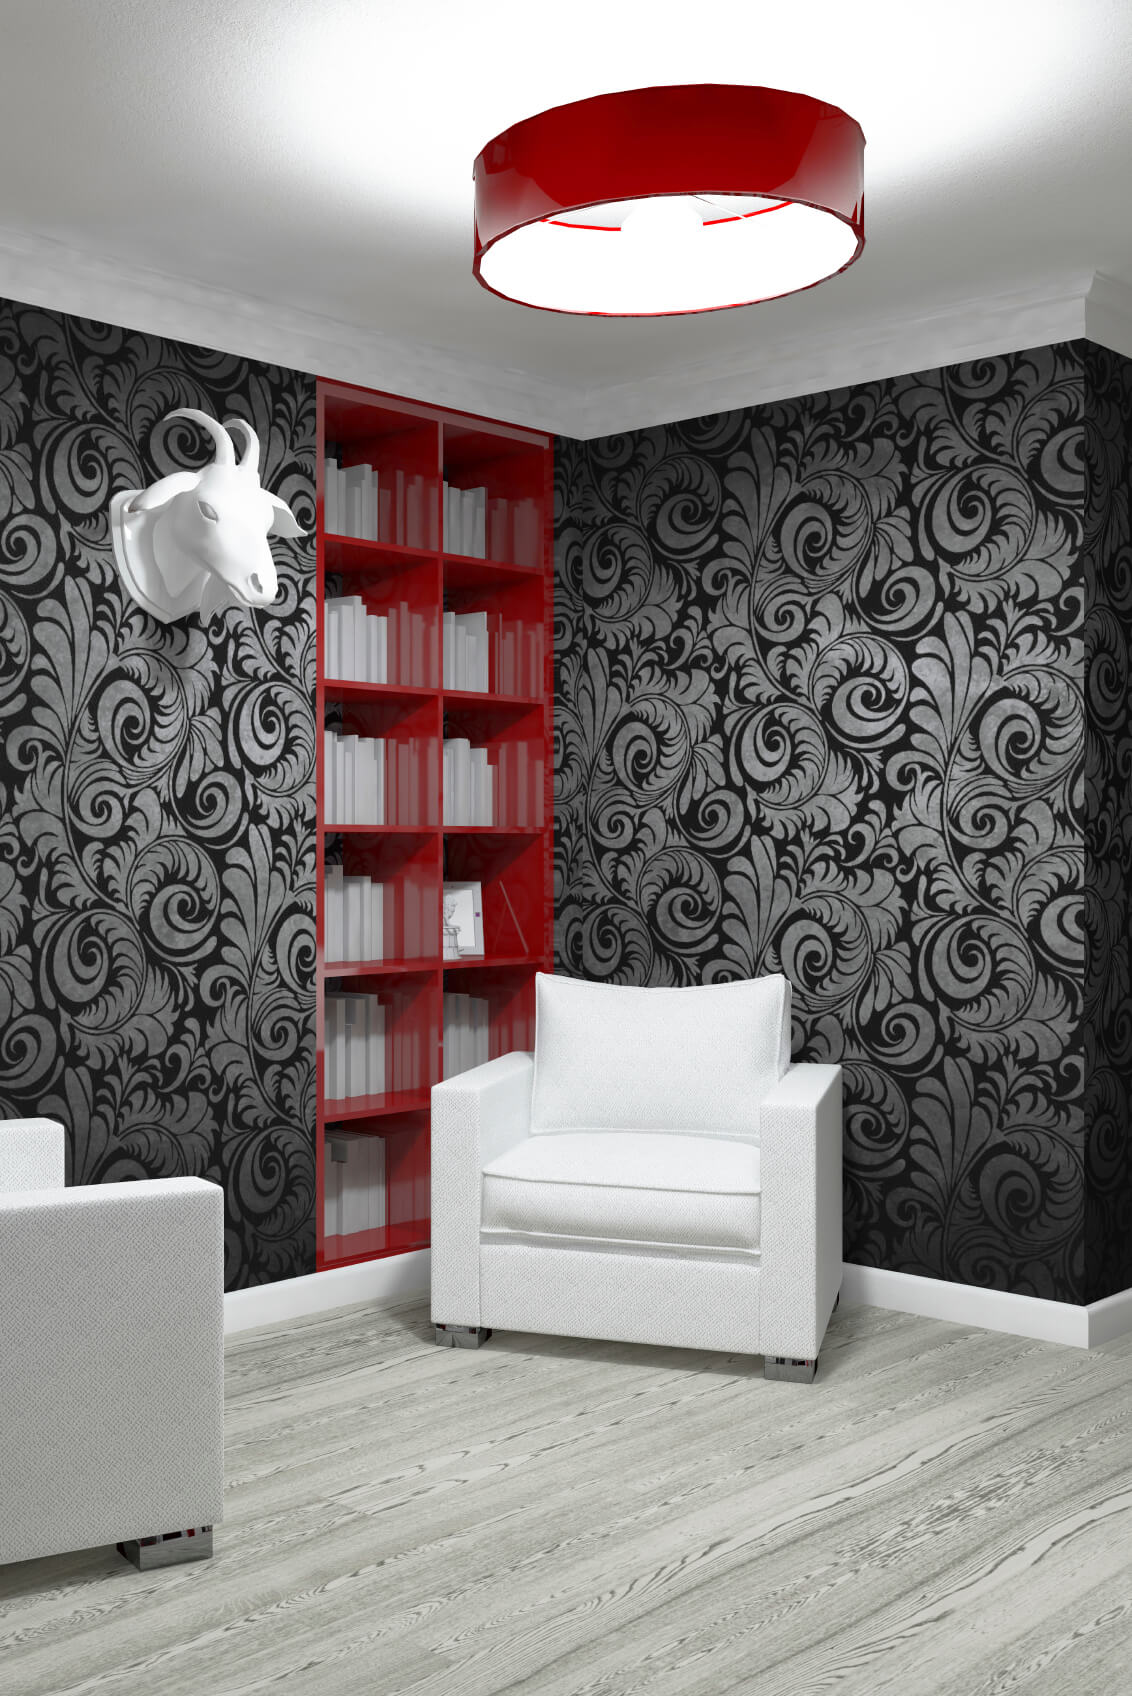 These built in shelves are colored red to make them pop against the rest of the monochromatic decor in this interesting and modern living room.